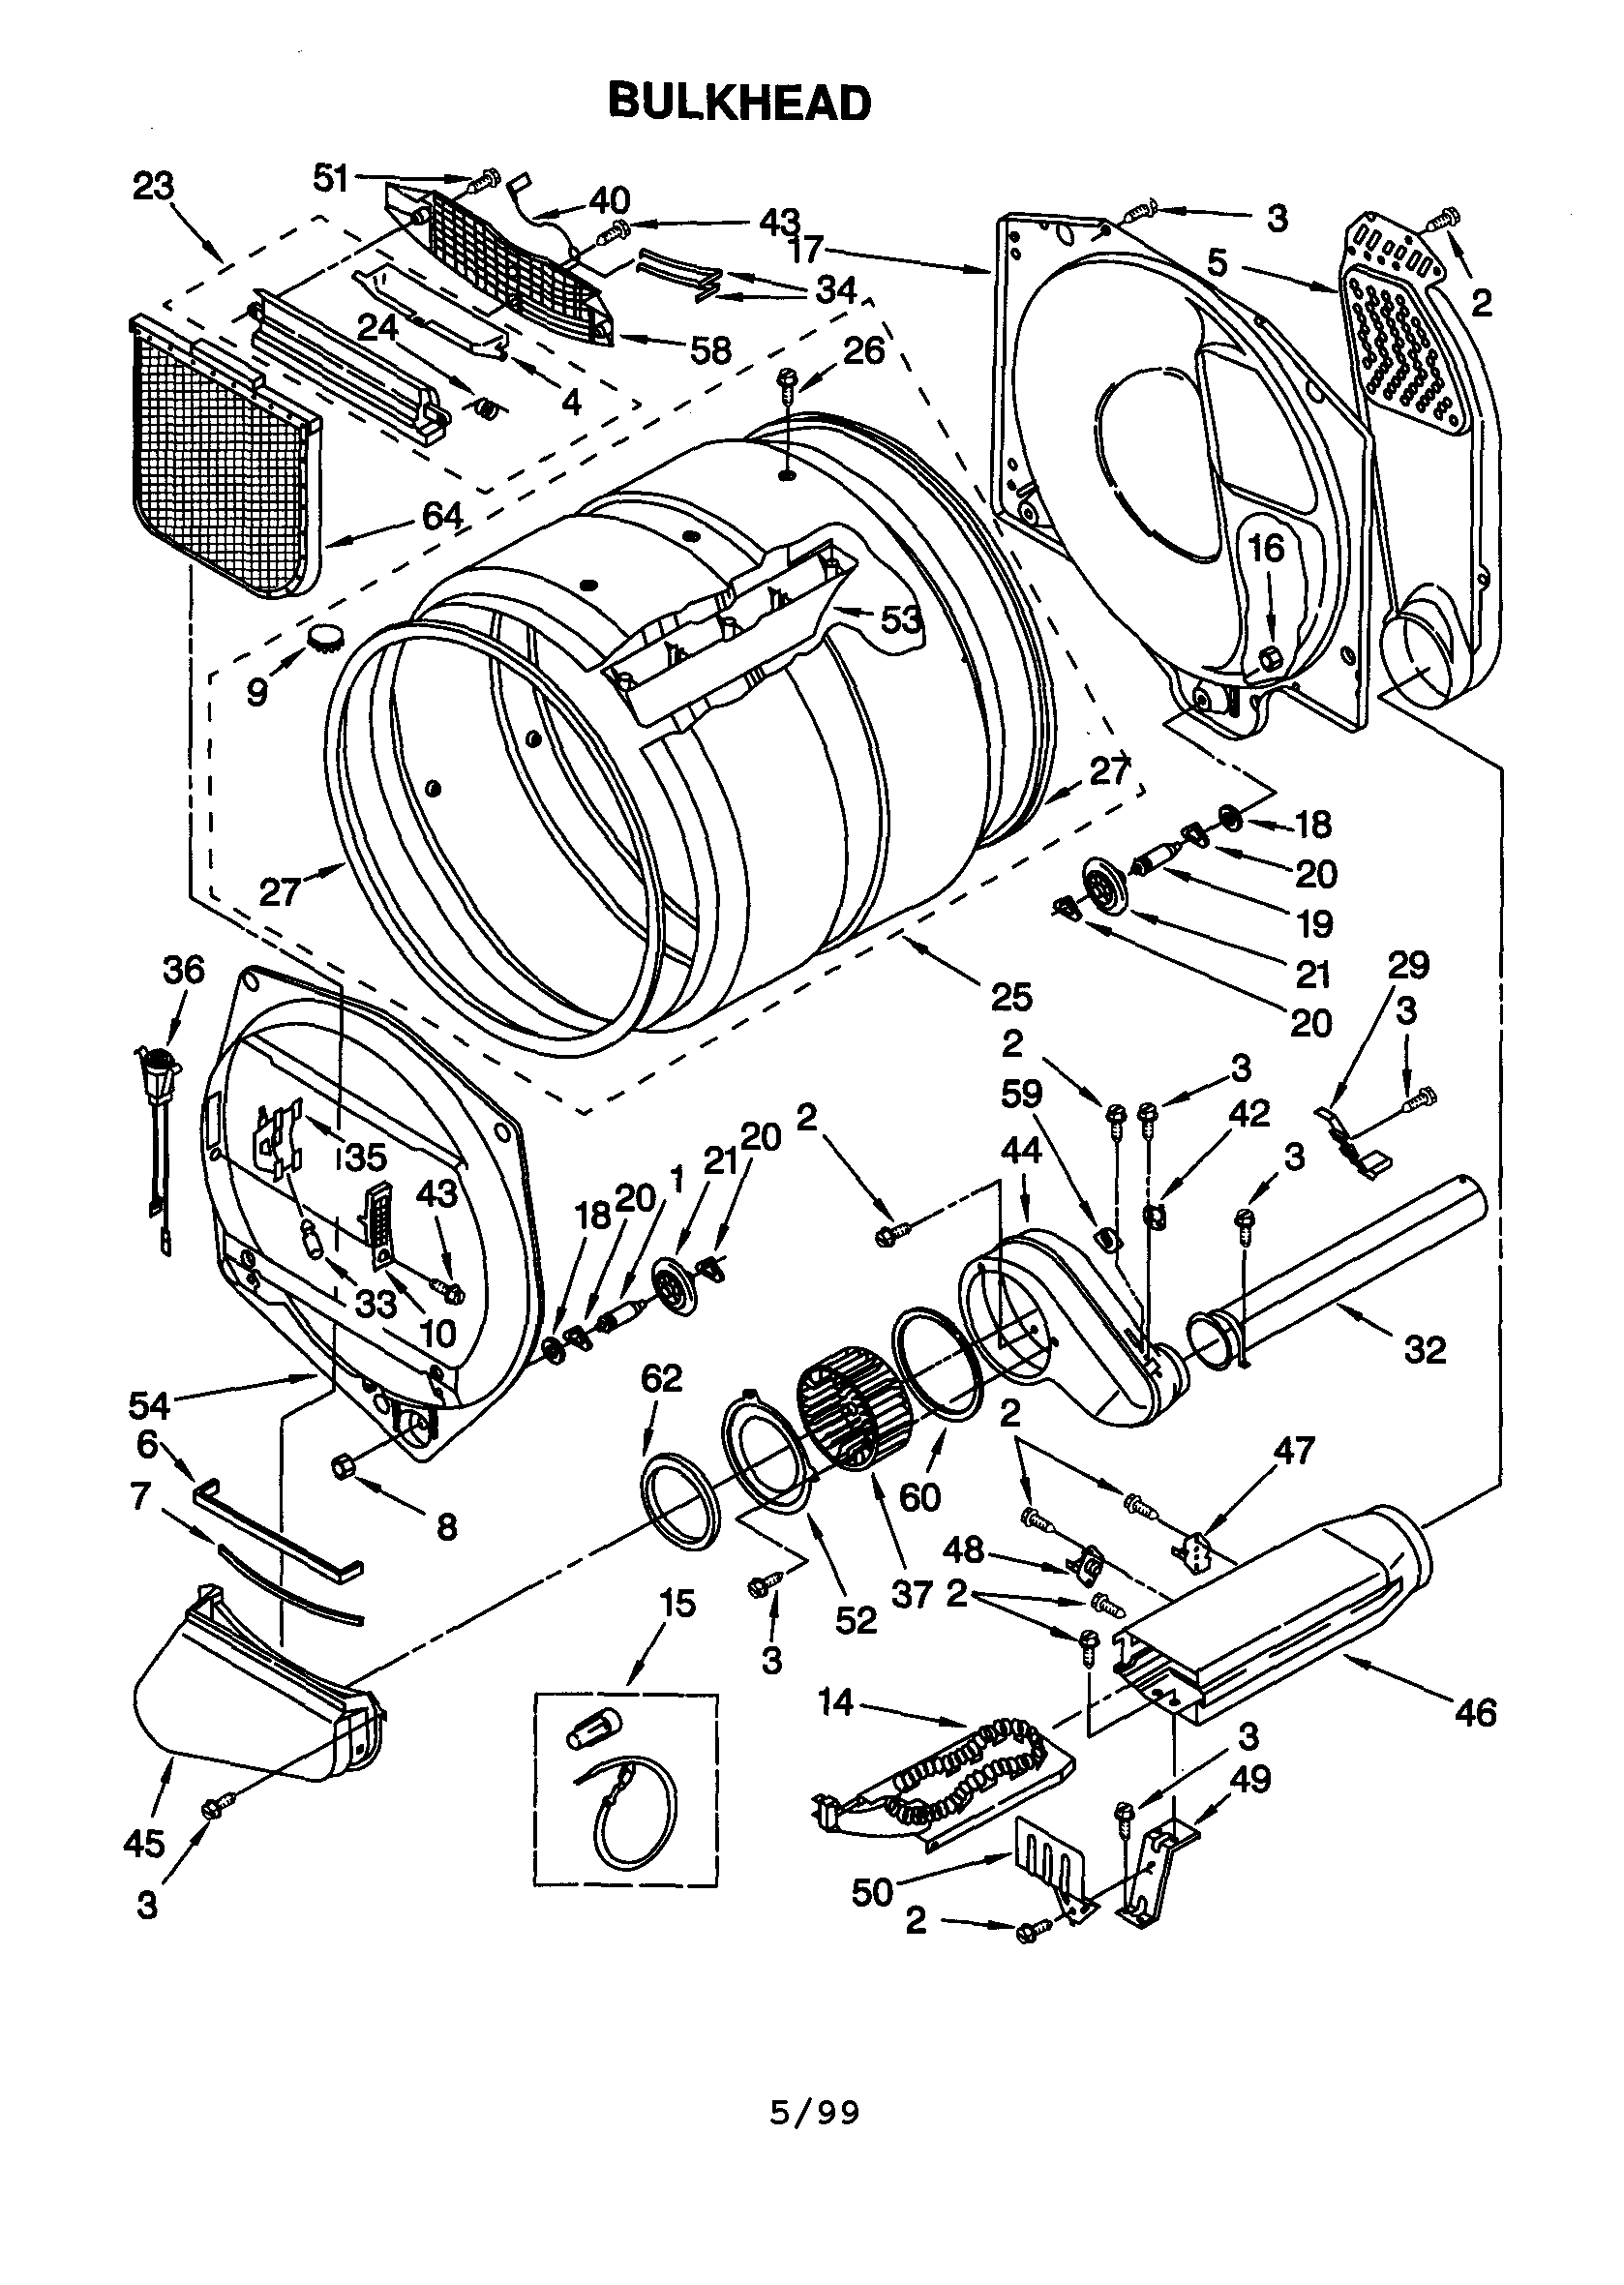 Kenmore Dryer Diagram wiring diagram